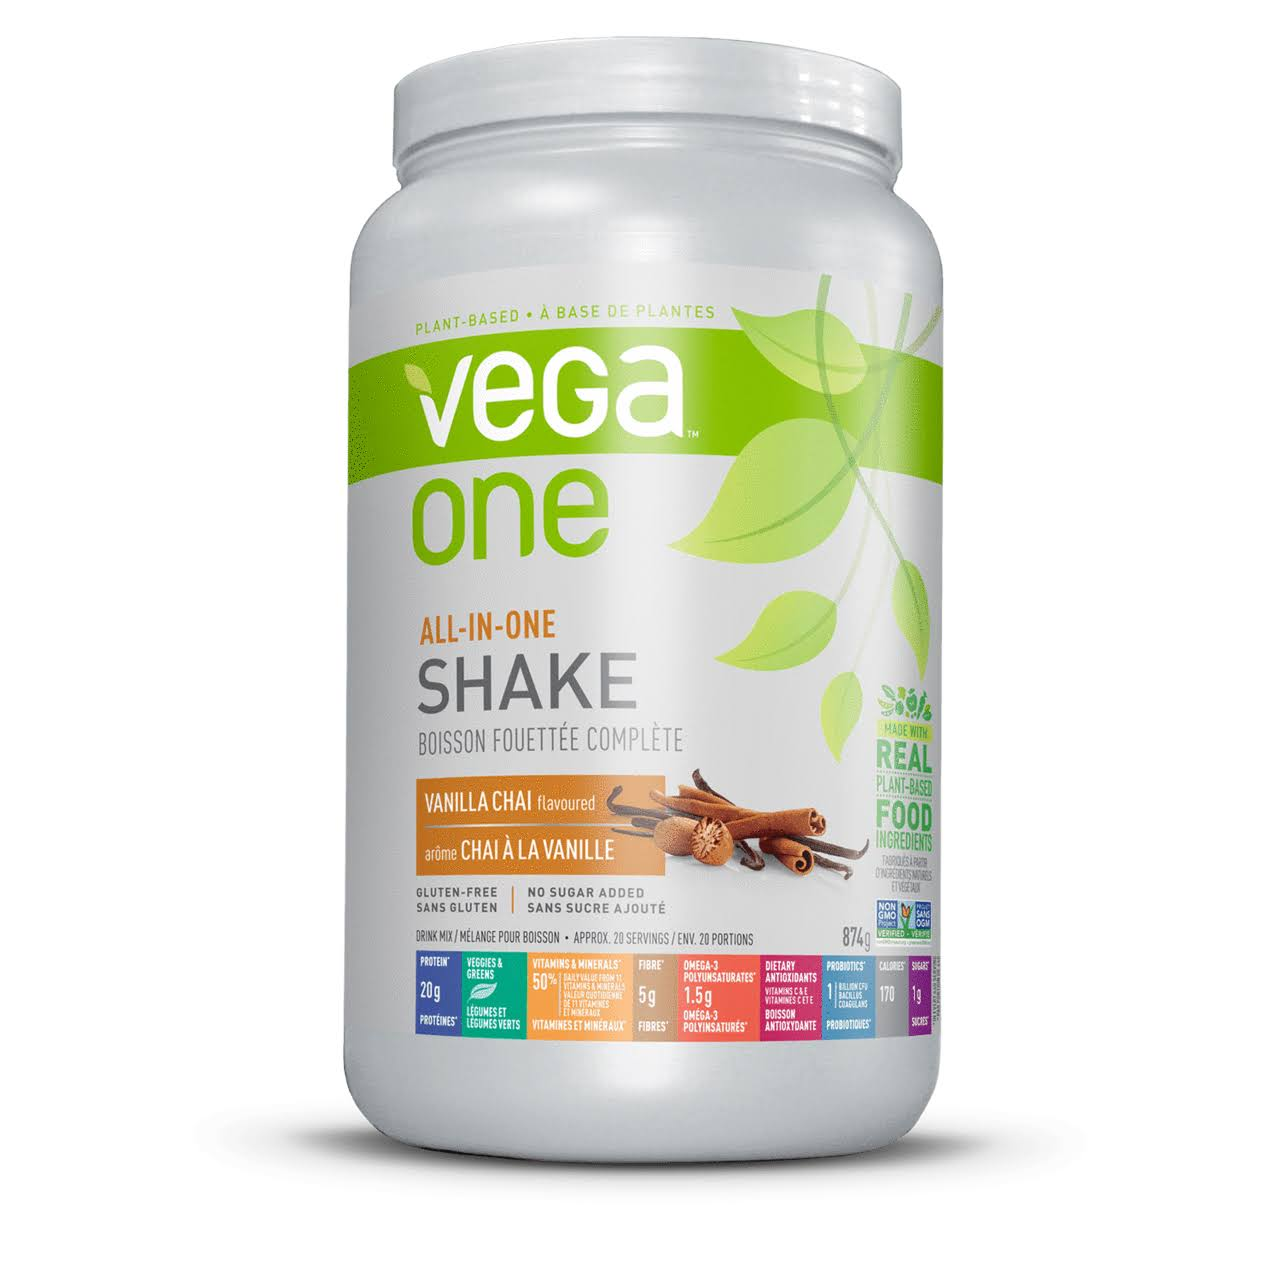 Vega One All In One Nutritional Shake - Vanila Chai, 874g